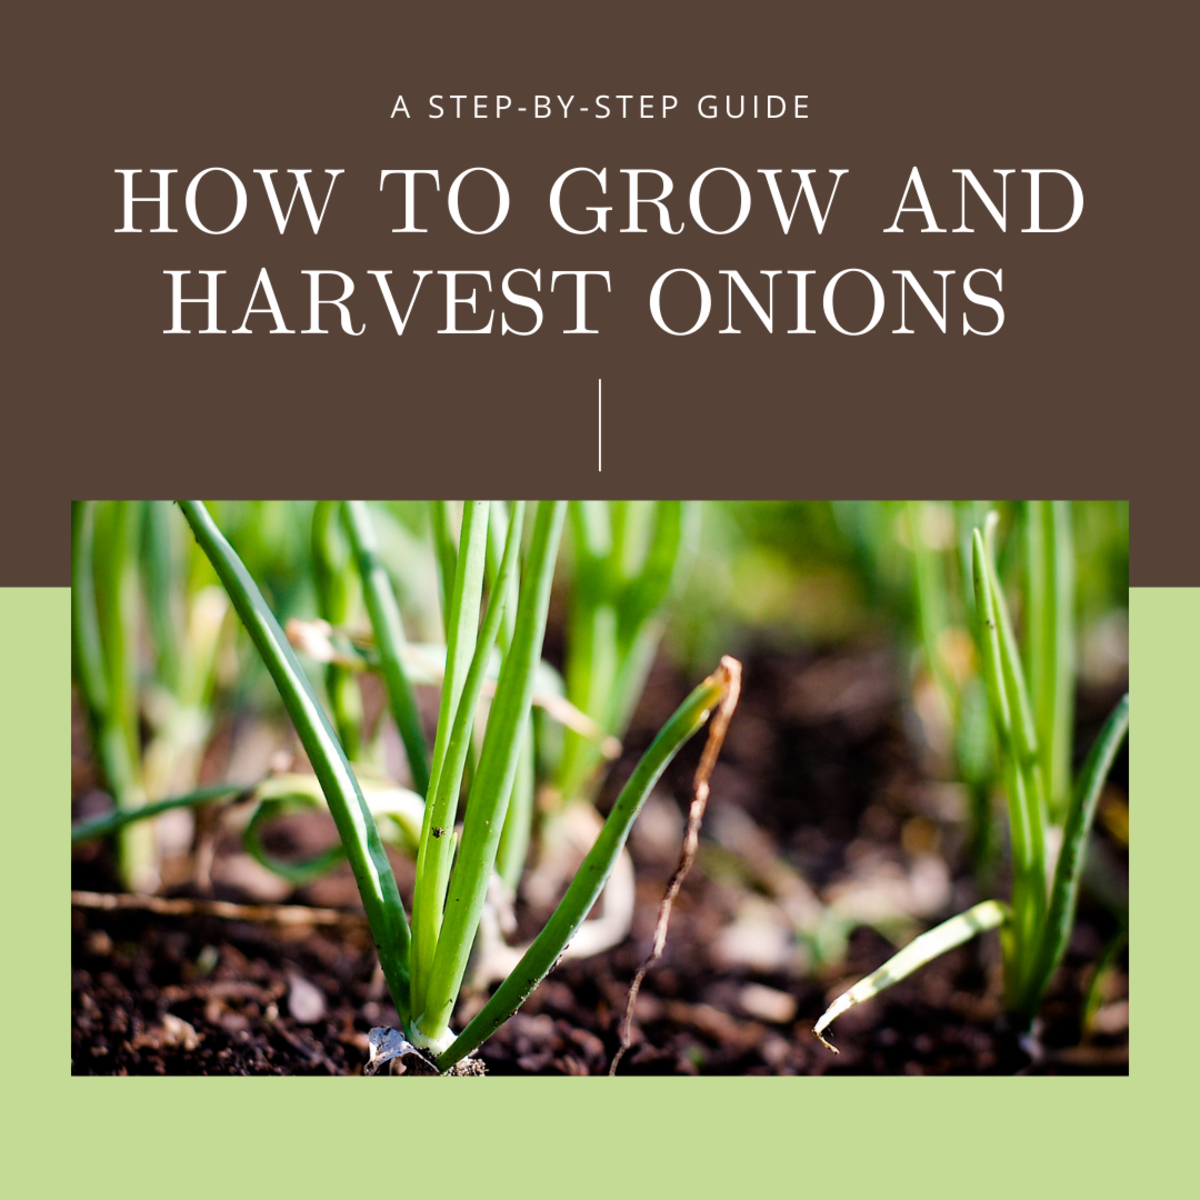 This guide will break down step-by-step the process of cultivating and harvesting green onions.